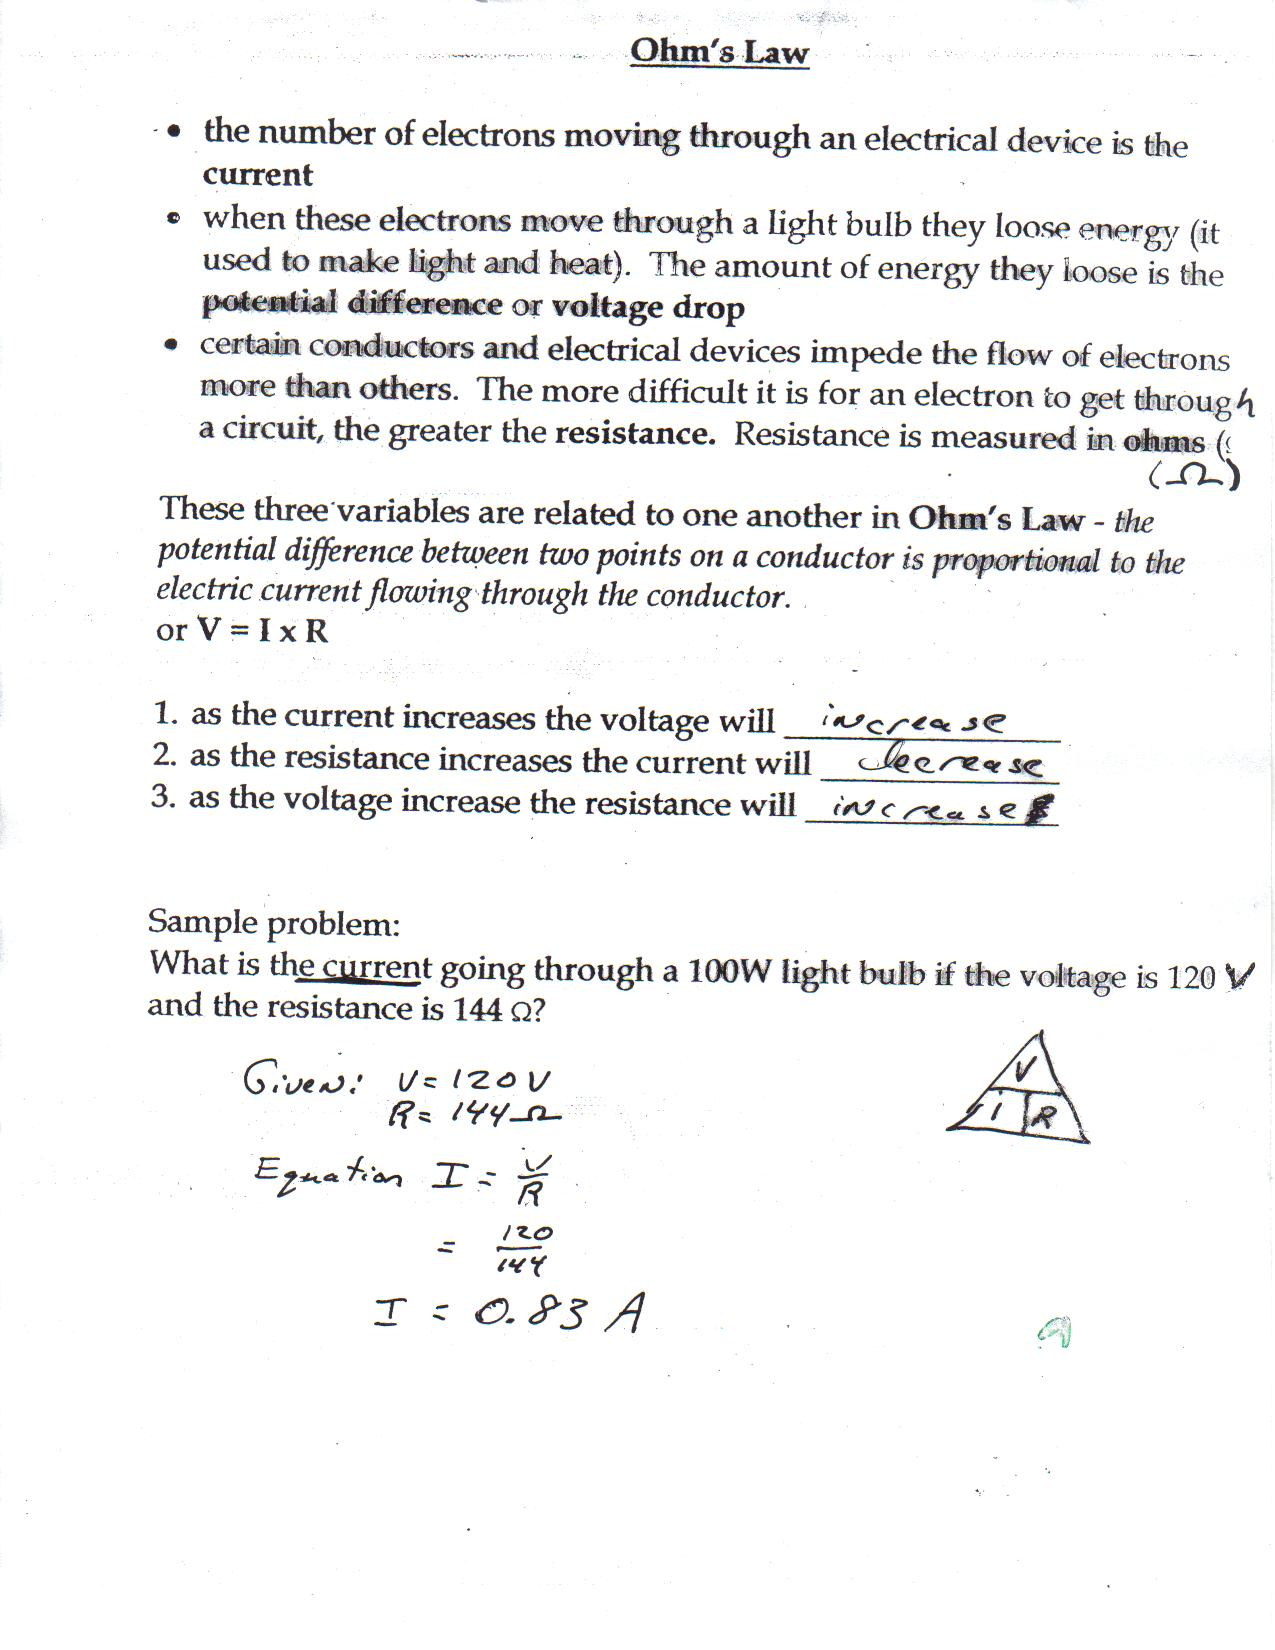 Worksheet Ohms Law Worksheet toxic science ohms law calculations